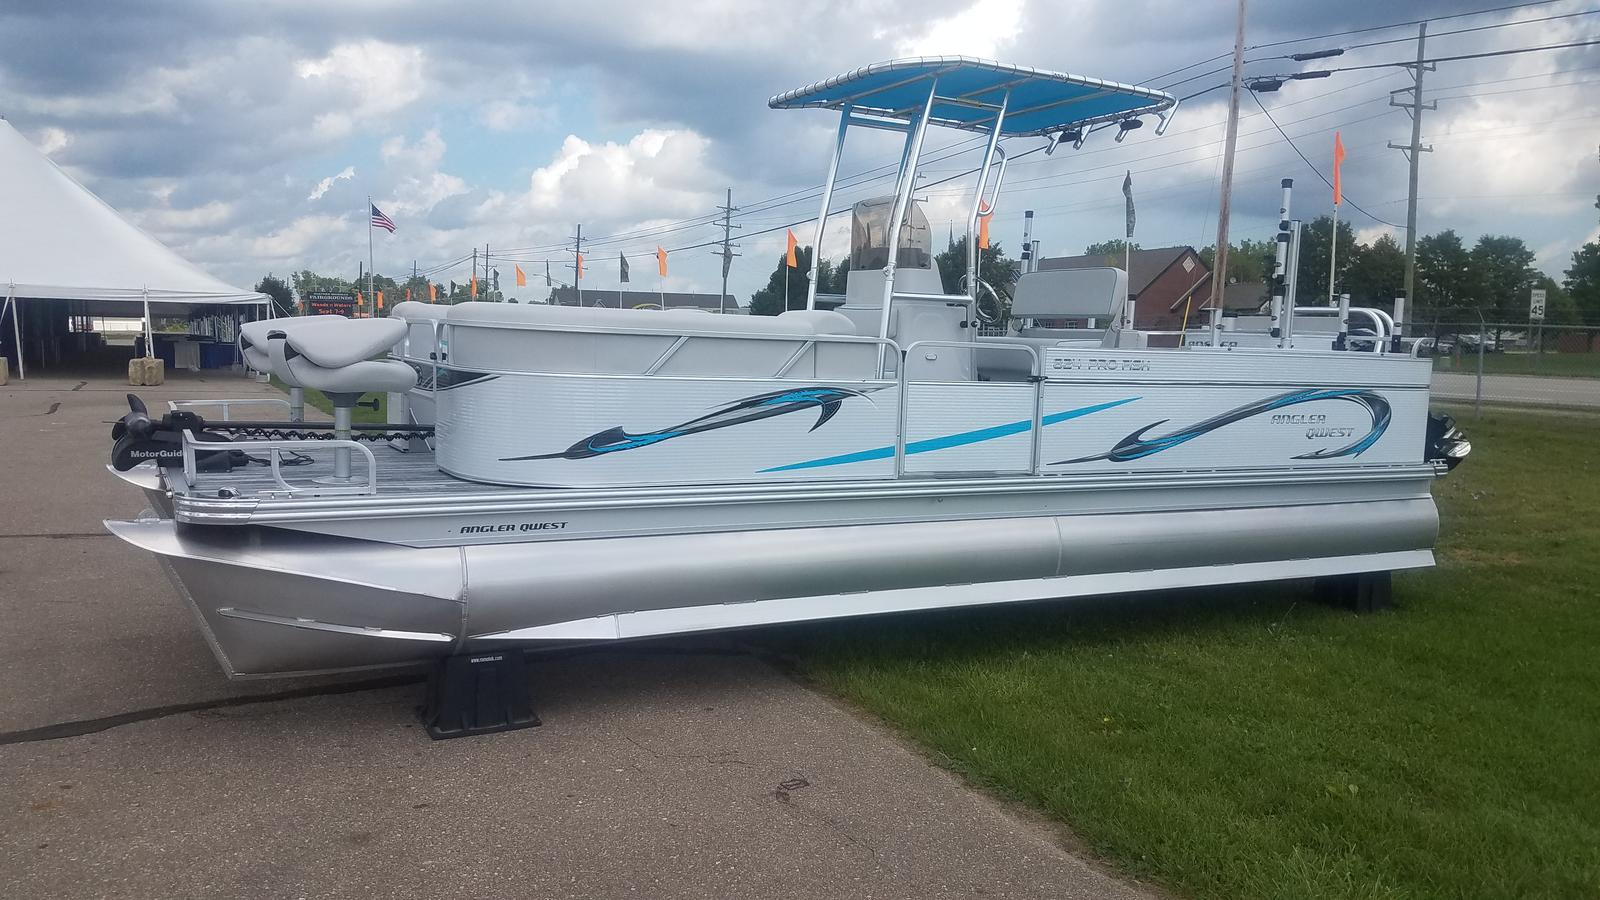 2019 ANGLER QWEST 824 PRO FISH N CRUISE DELUXE